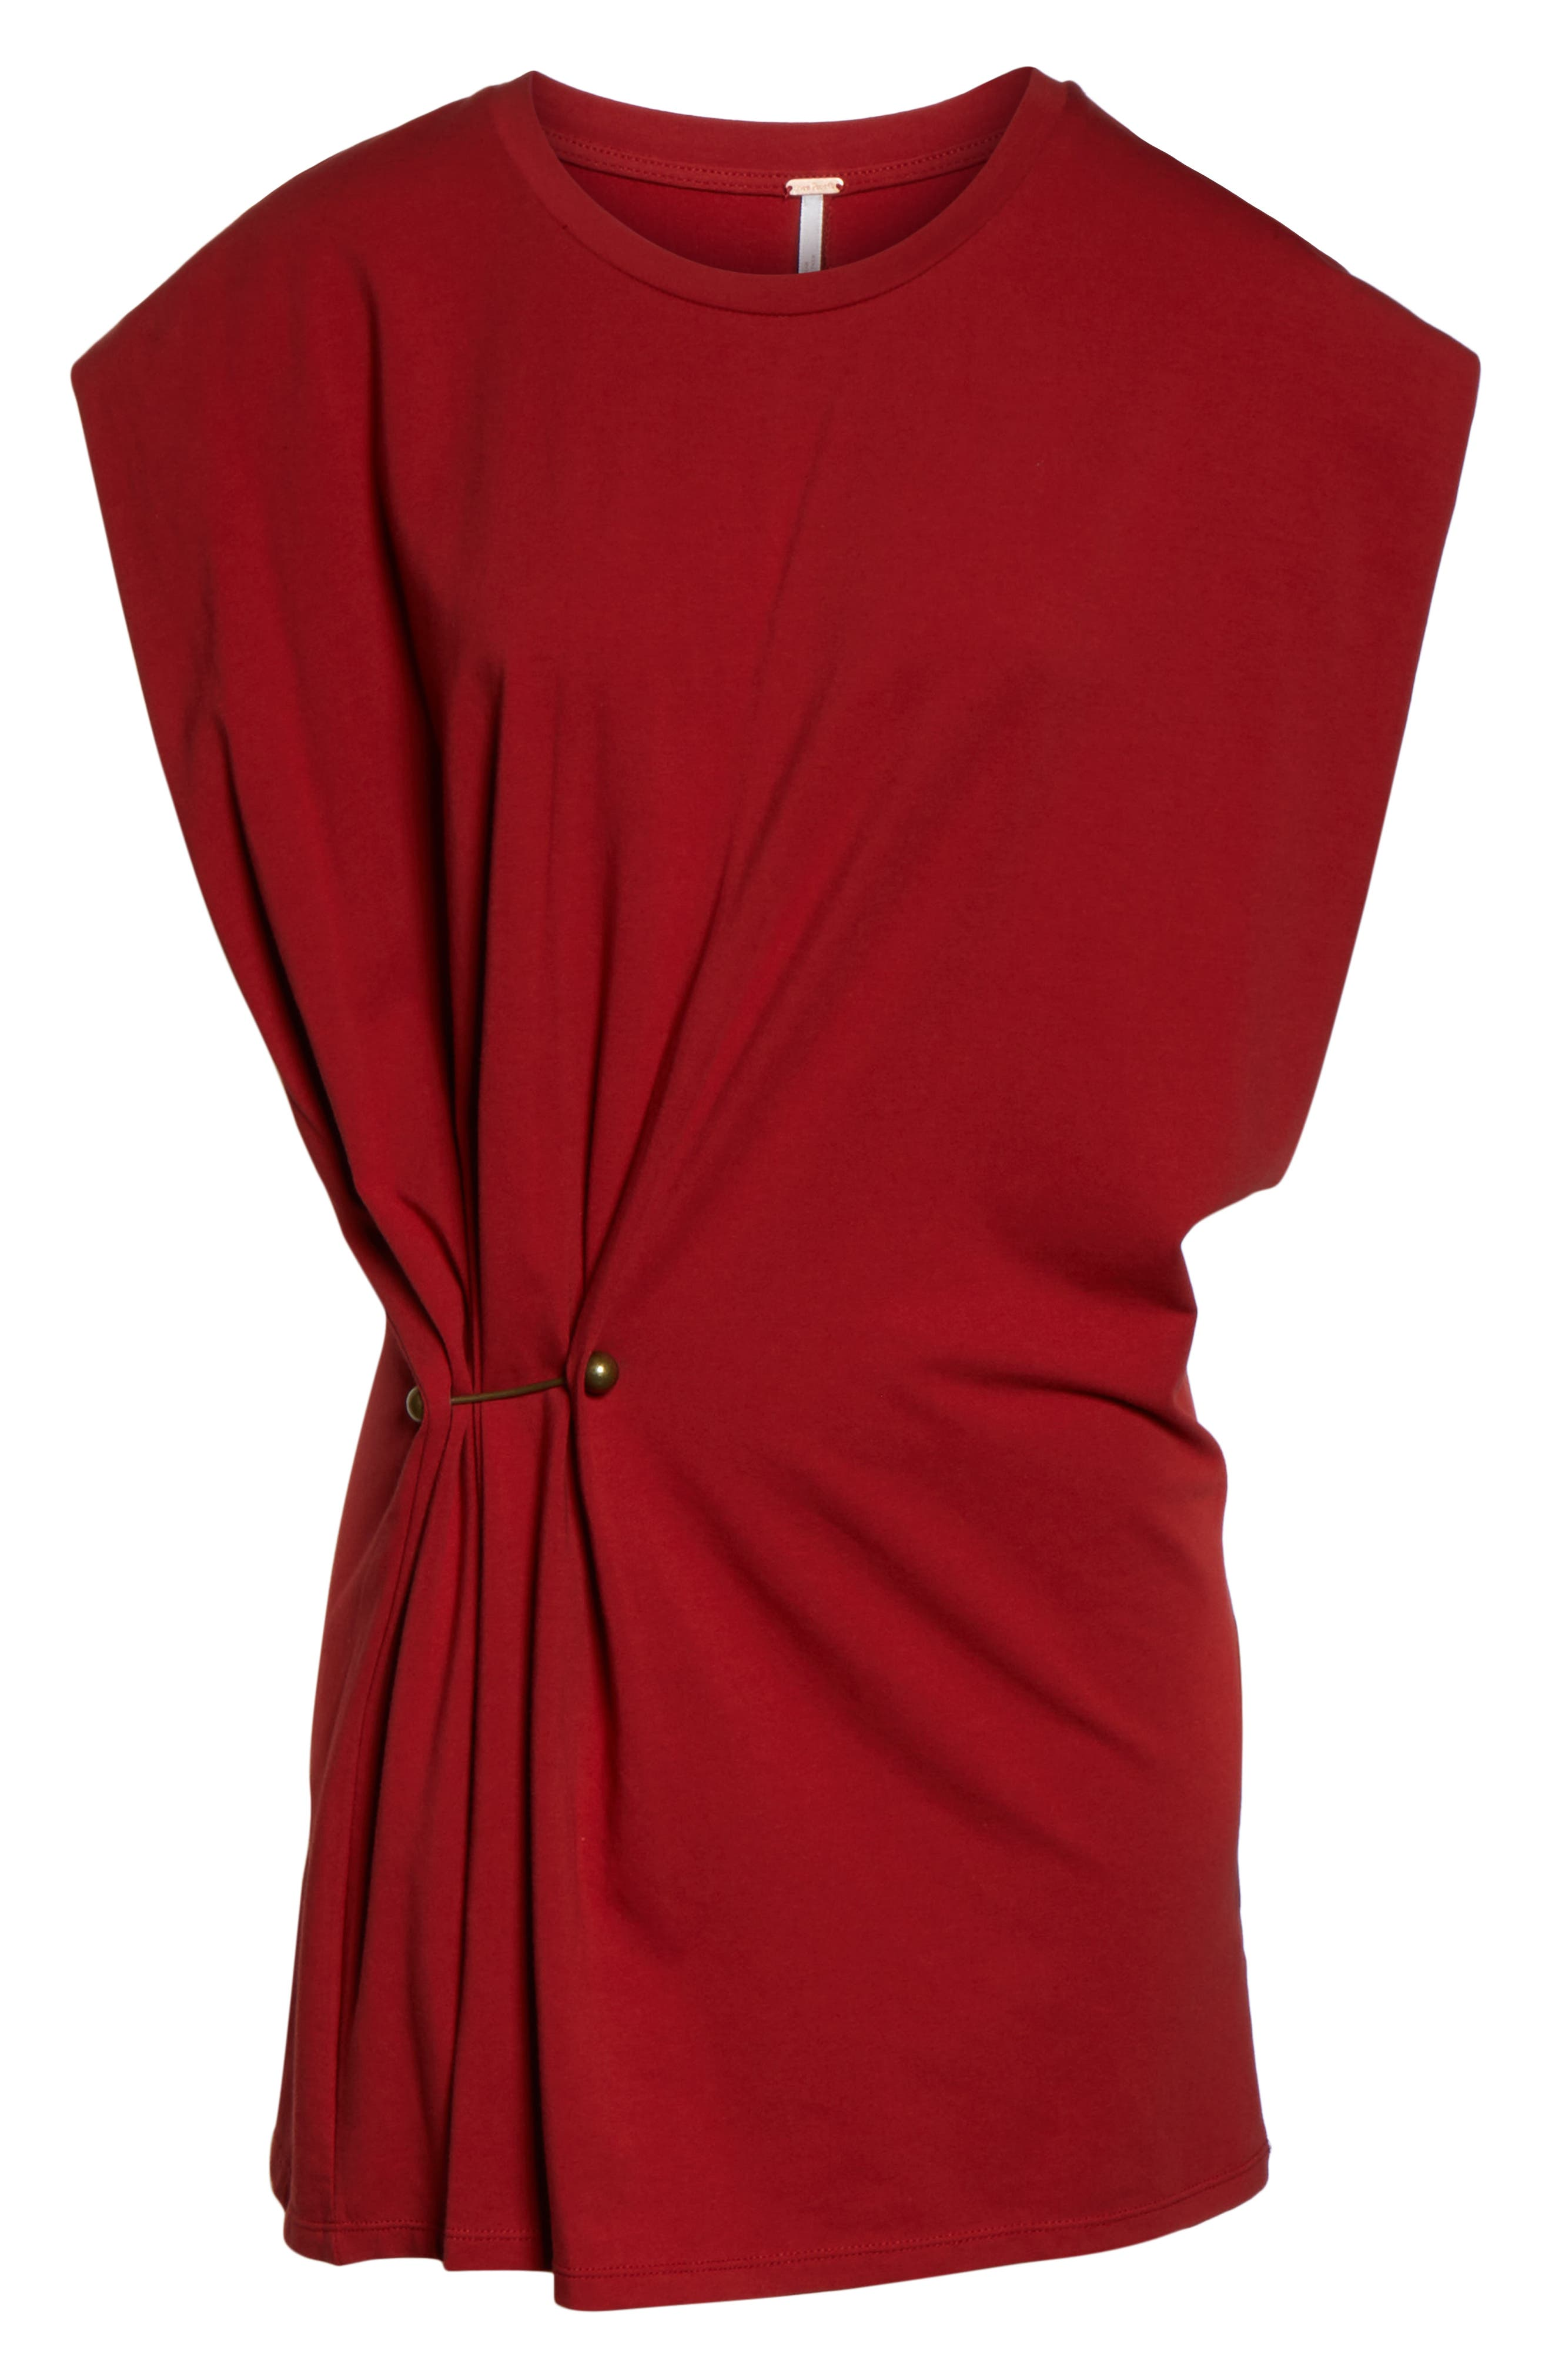 FREE PEOPLE, Bianca Shift Dress, Alternate thumbnail 6, color, RED